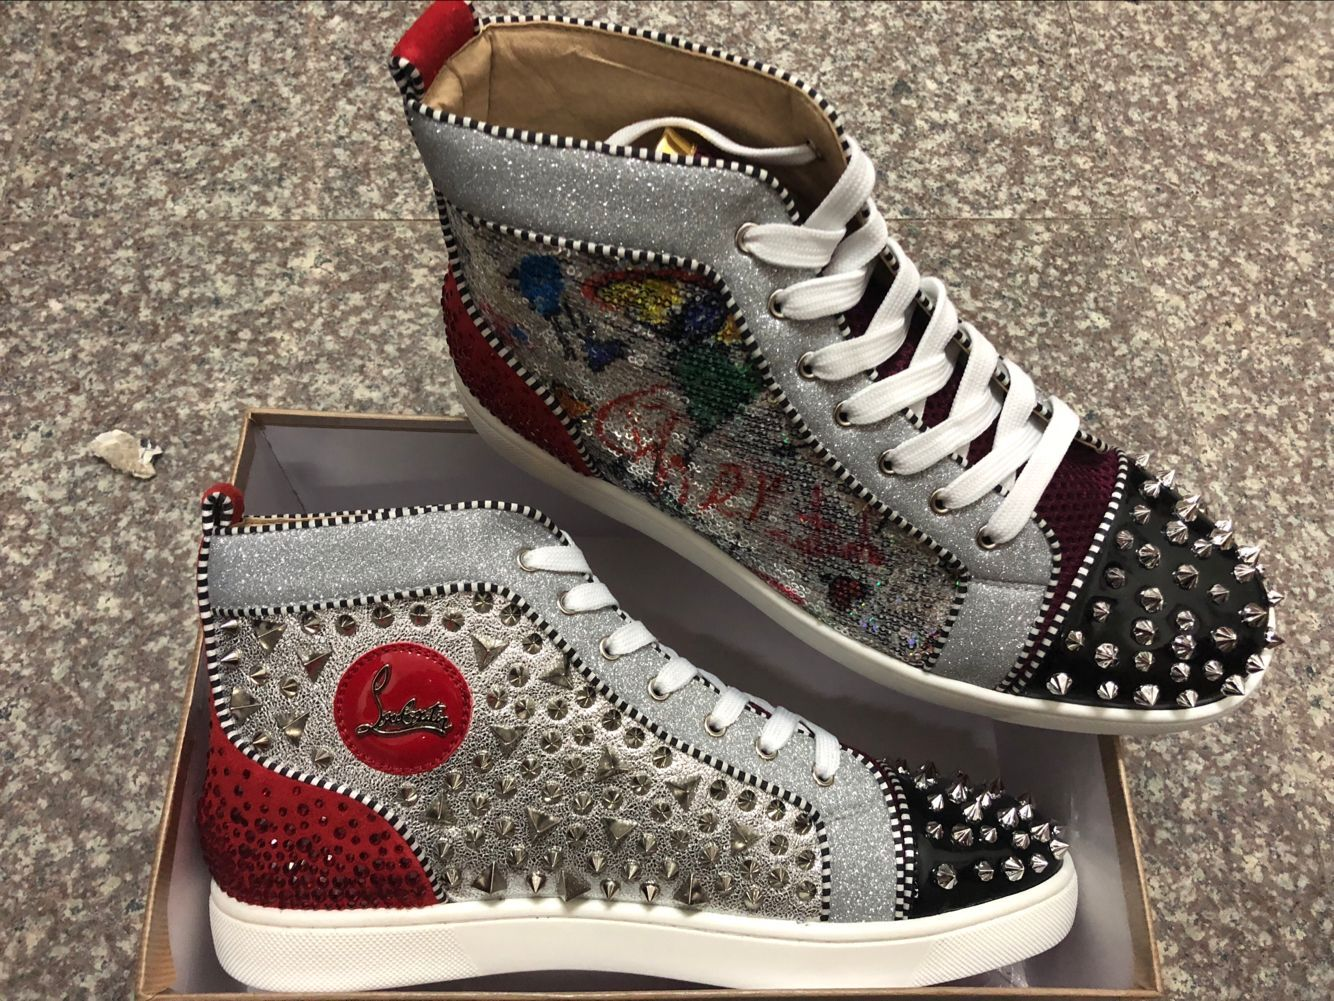 CL shoes